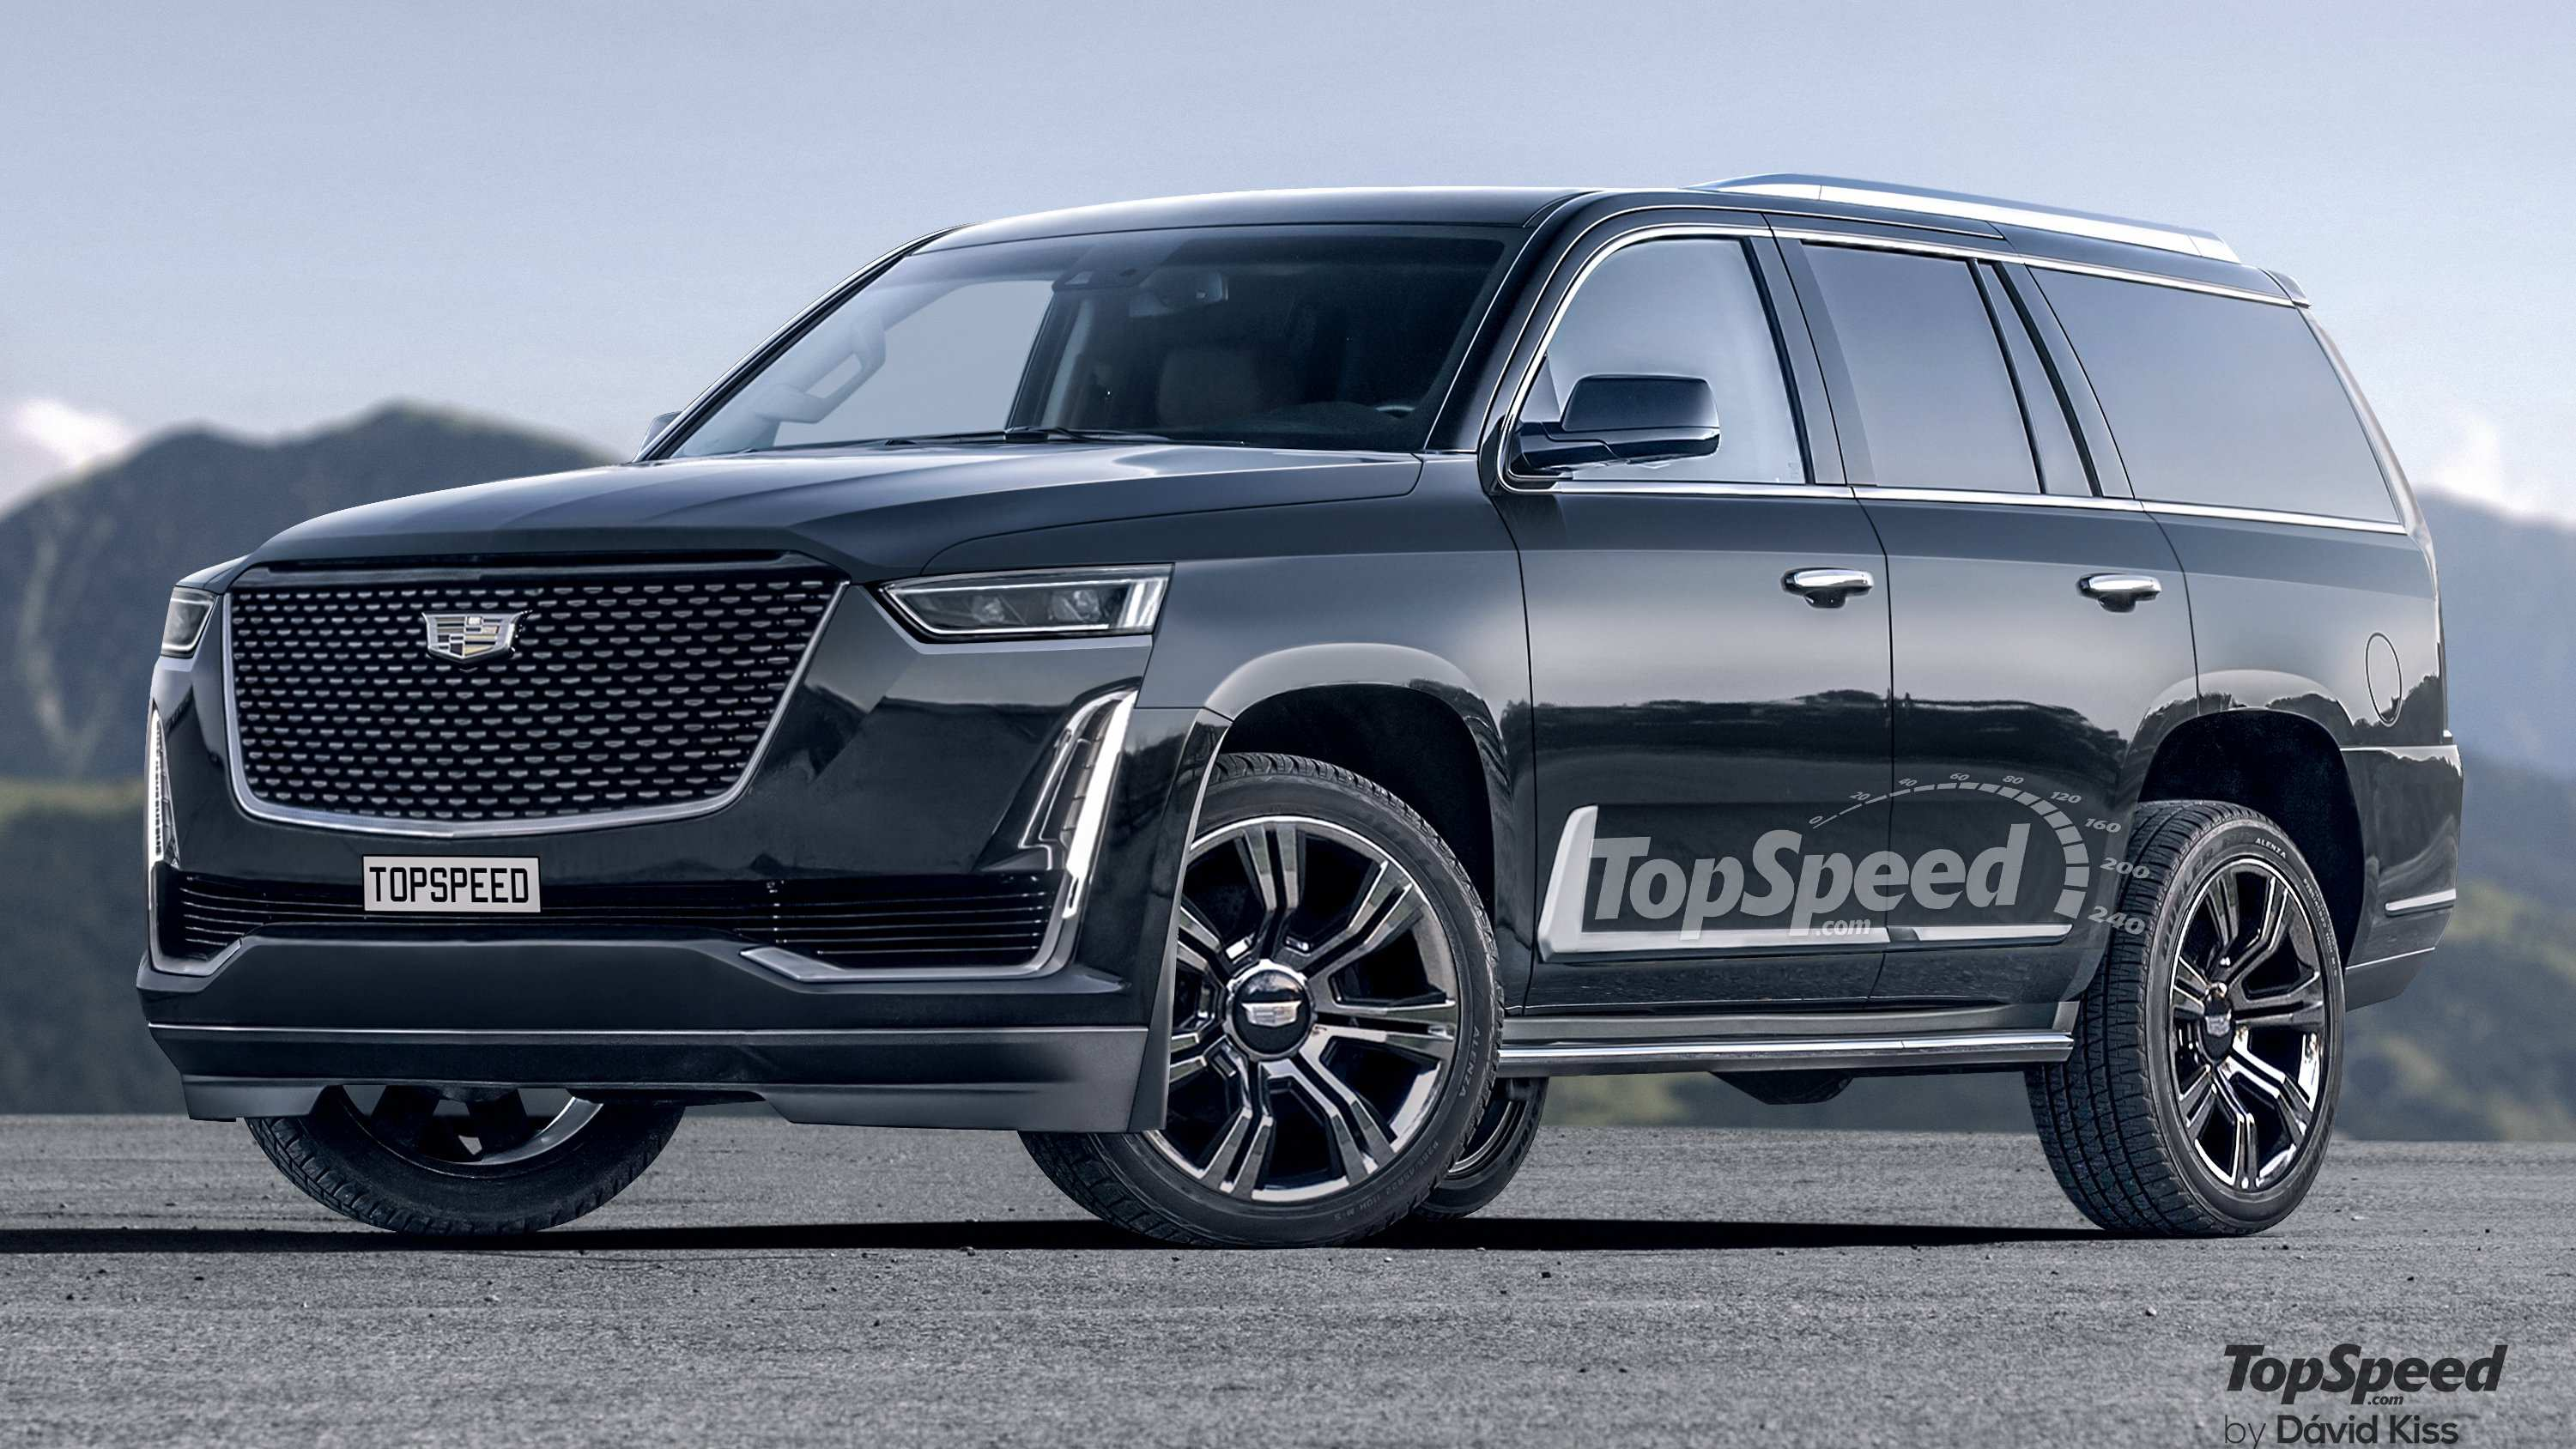 70 The Cadillac Escalade 2020 Release Date Exterior and Interior by Cadillac Escalade 2020 Release Date